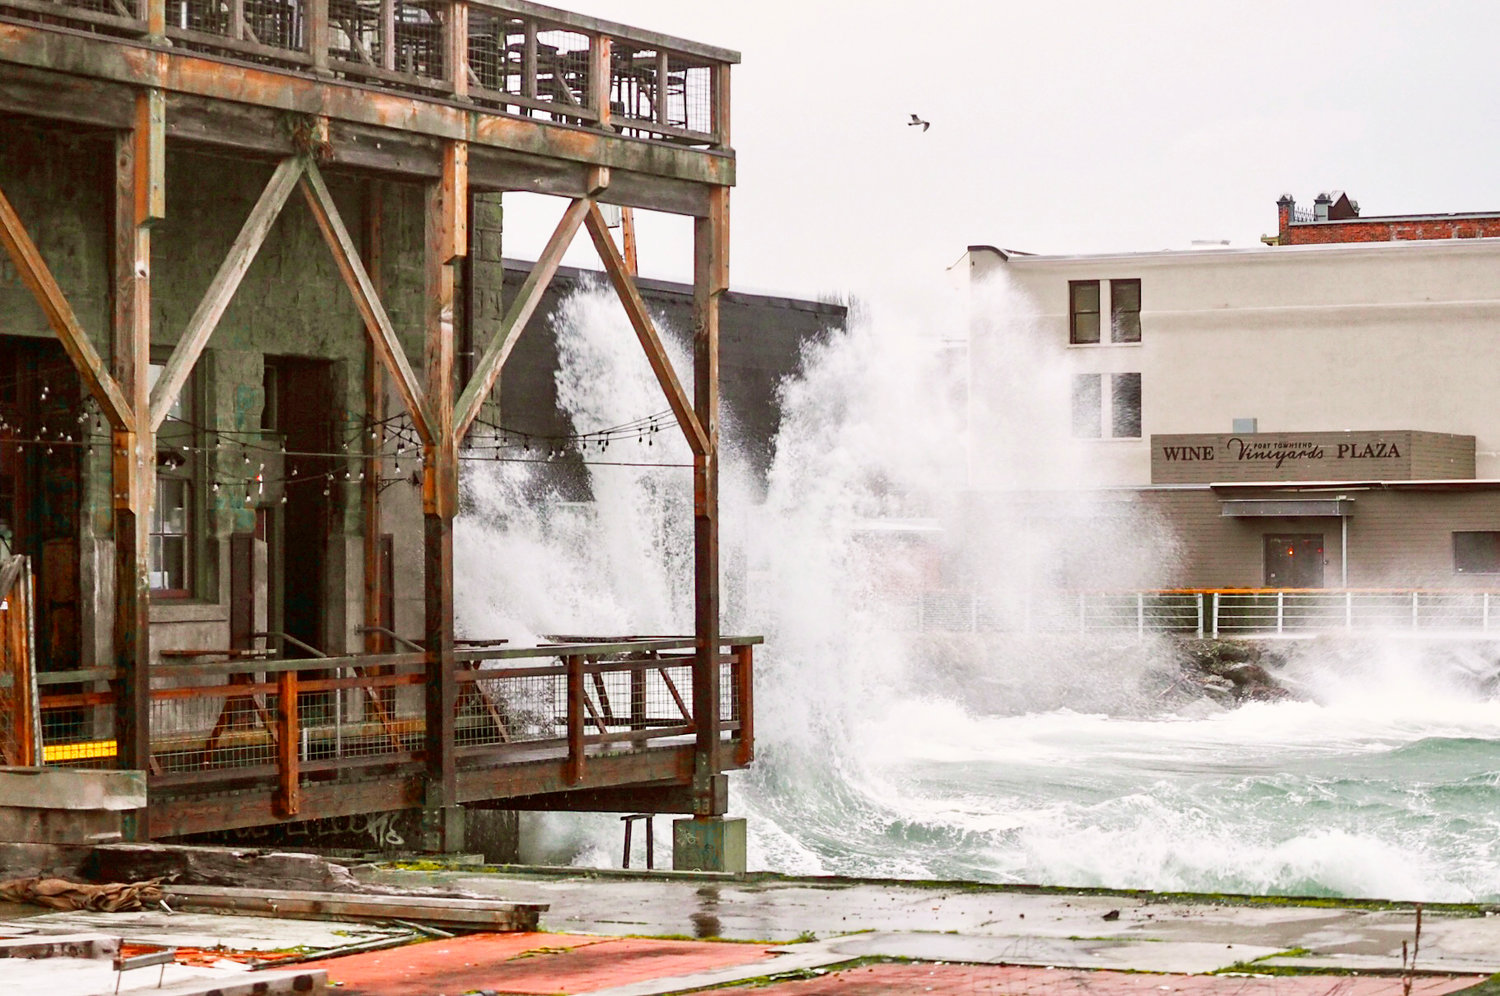 In this photo, captured by freelance maritime journalist Dieter Loibner on the morning of Jan. 29 during an 8.9-foot high tide, under a low-pressure system and with south winds whipping the crests, the waters of Port Townsend Bay are seen crashing against the sea-facing foundations of Water Street.